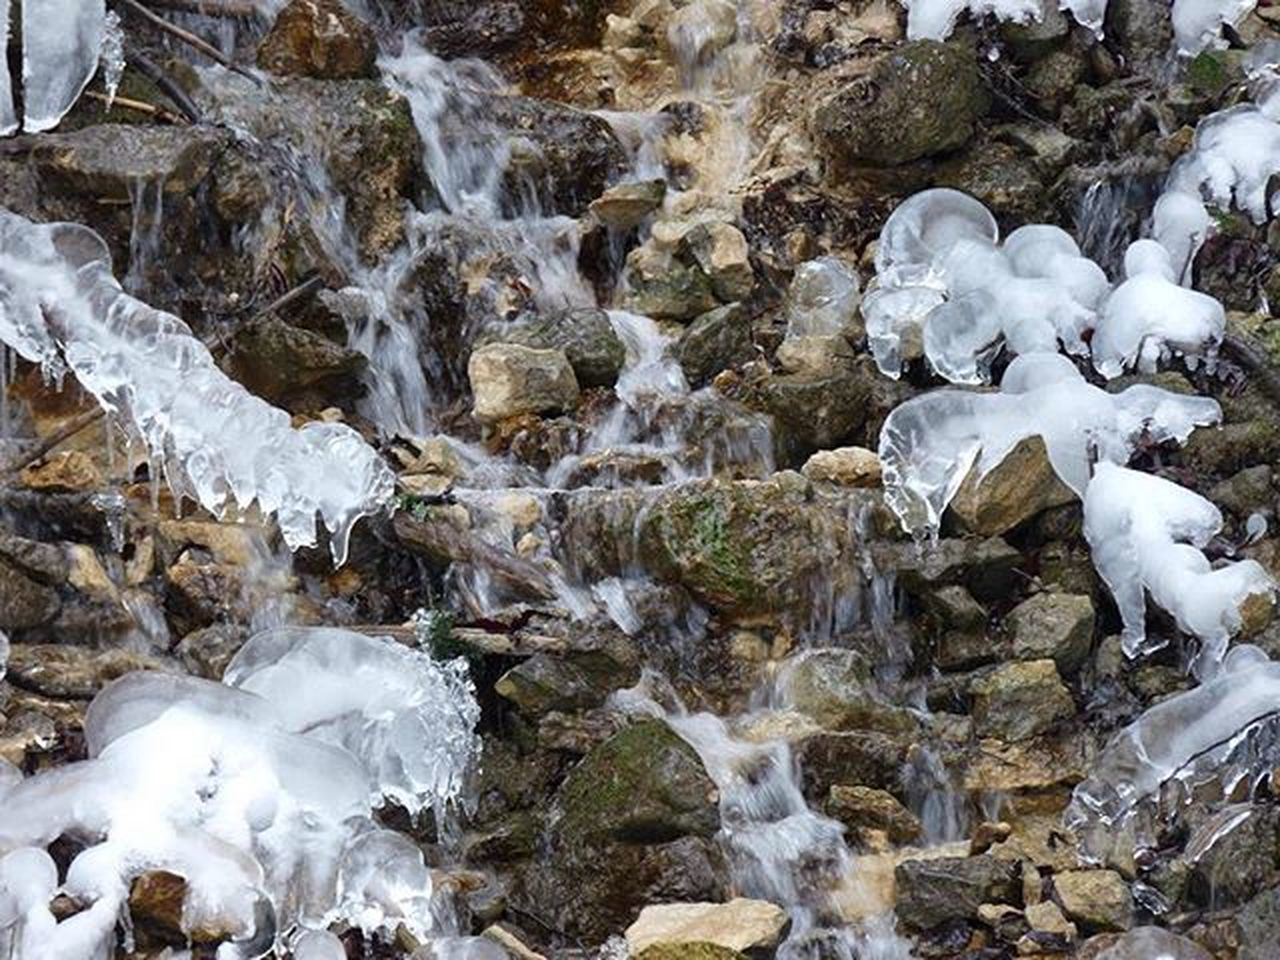 rock - object, nature, beauty in nature, water, outdoors, waterfall, no people, tranquility, scenics, day, cold temperature